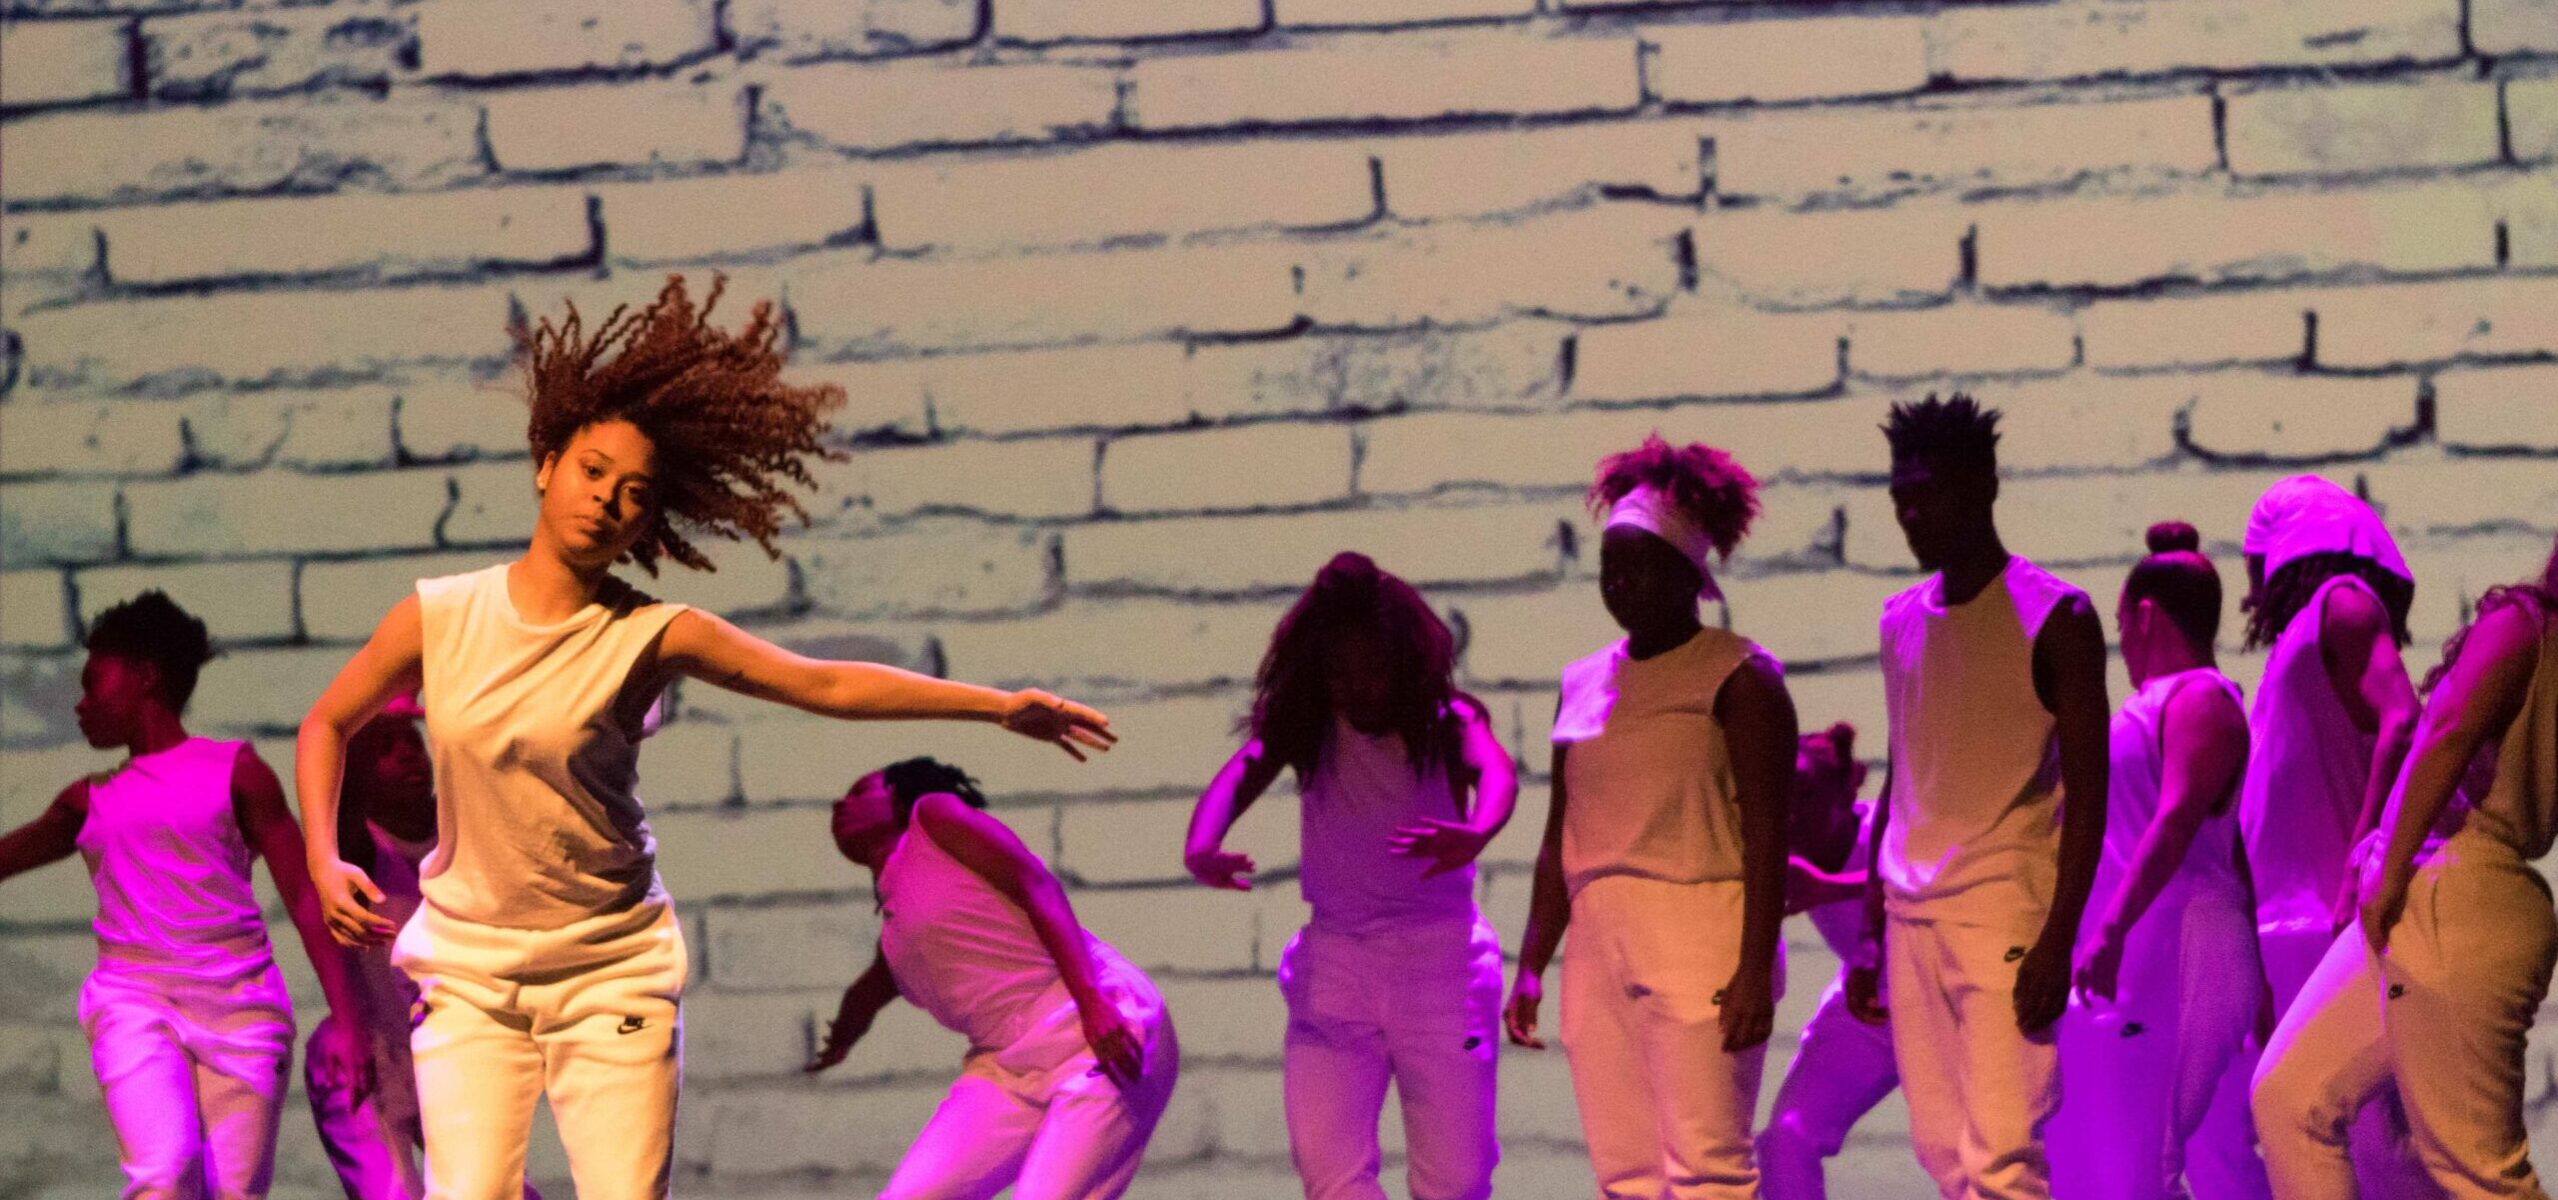 A dancer with left arm outstretched and hair flying dances in front of a group